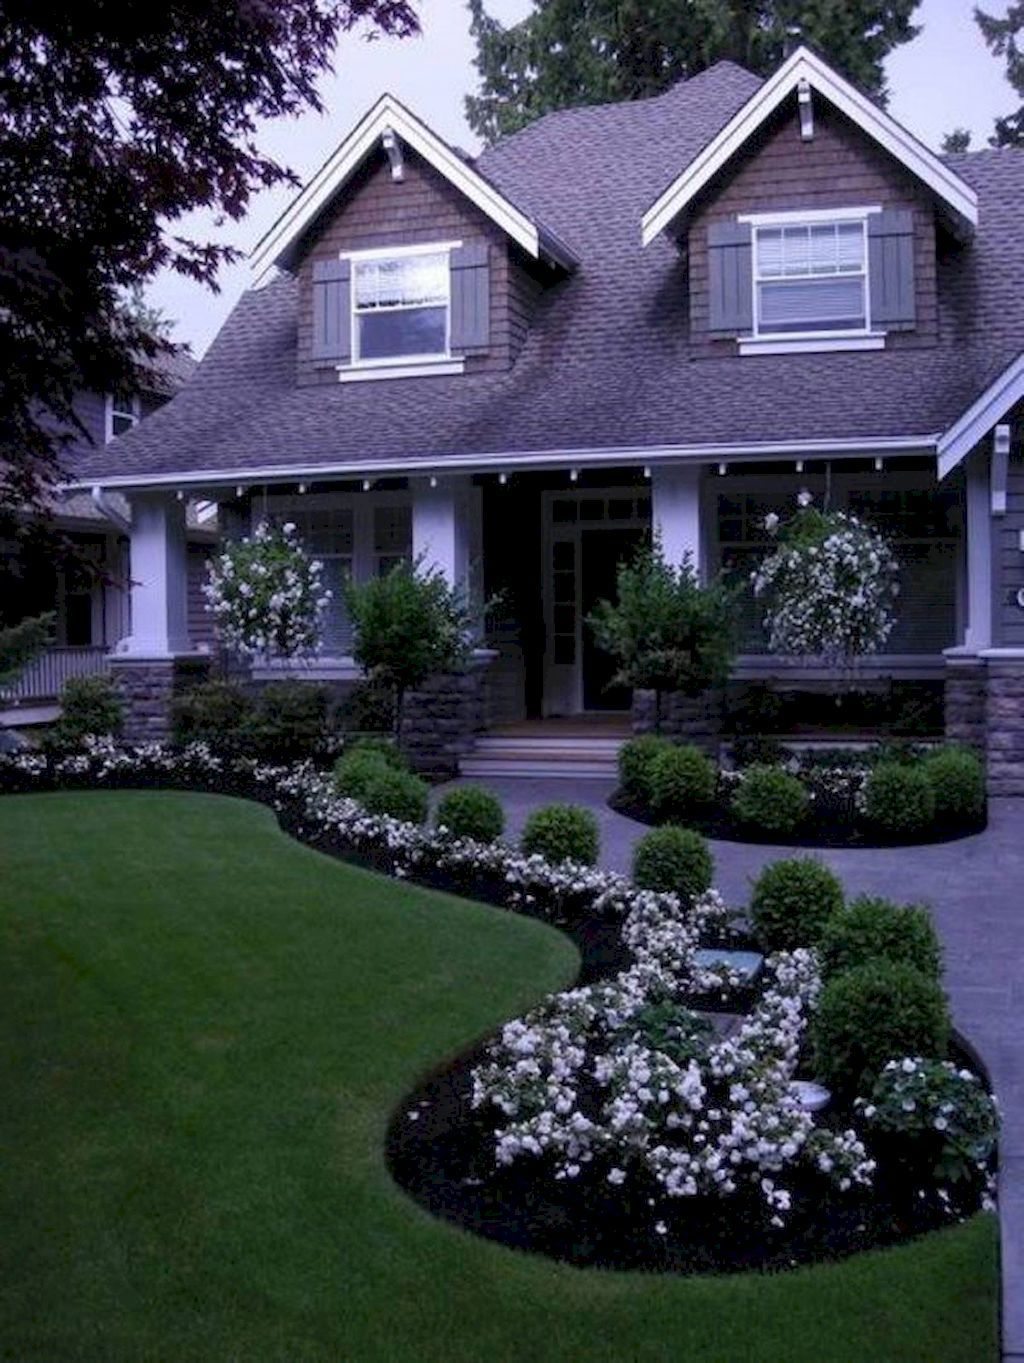 40 beautiful front yard landscaping ideas yard for Front garden design plans